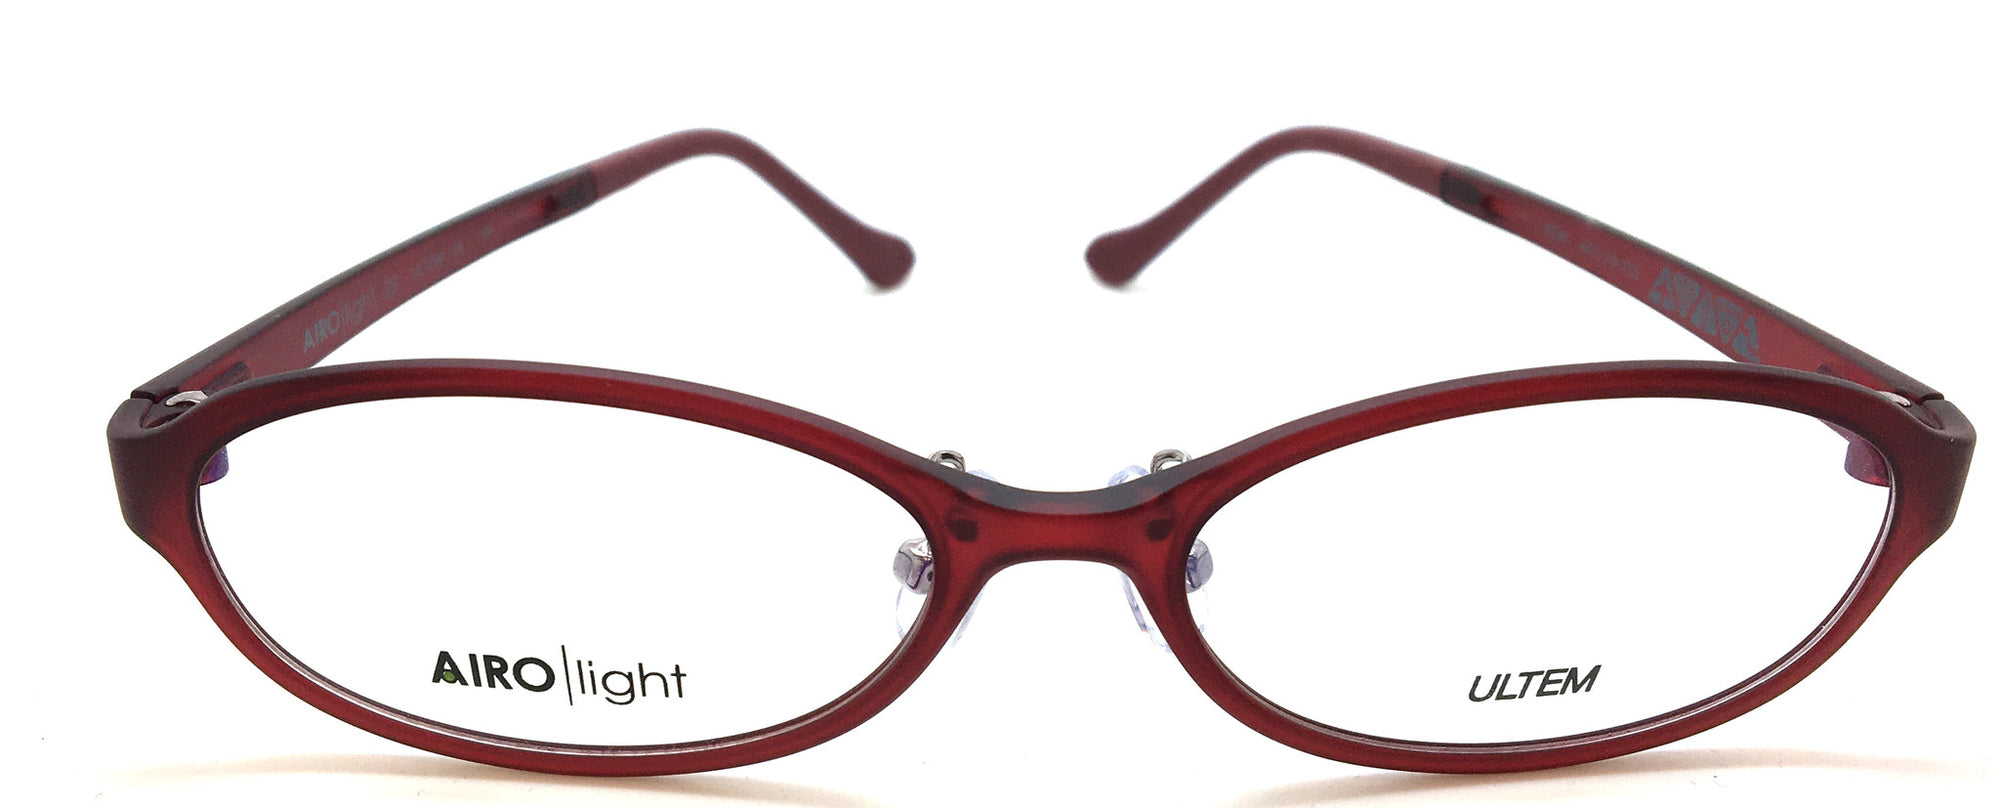 AIRO light 29 Prescription Eyeglasses Ultem Frame  AR29 RDM